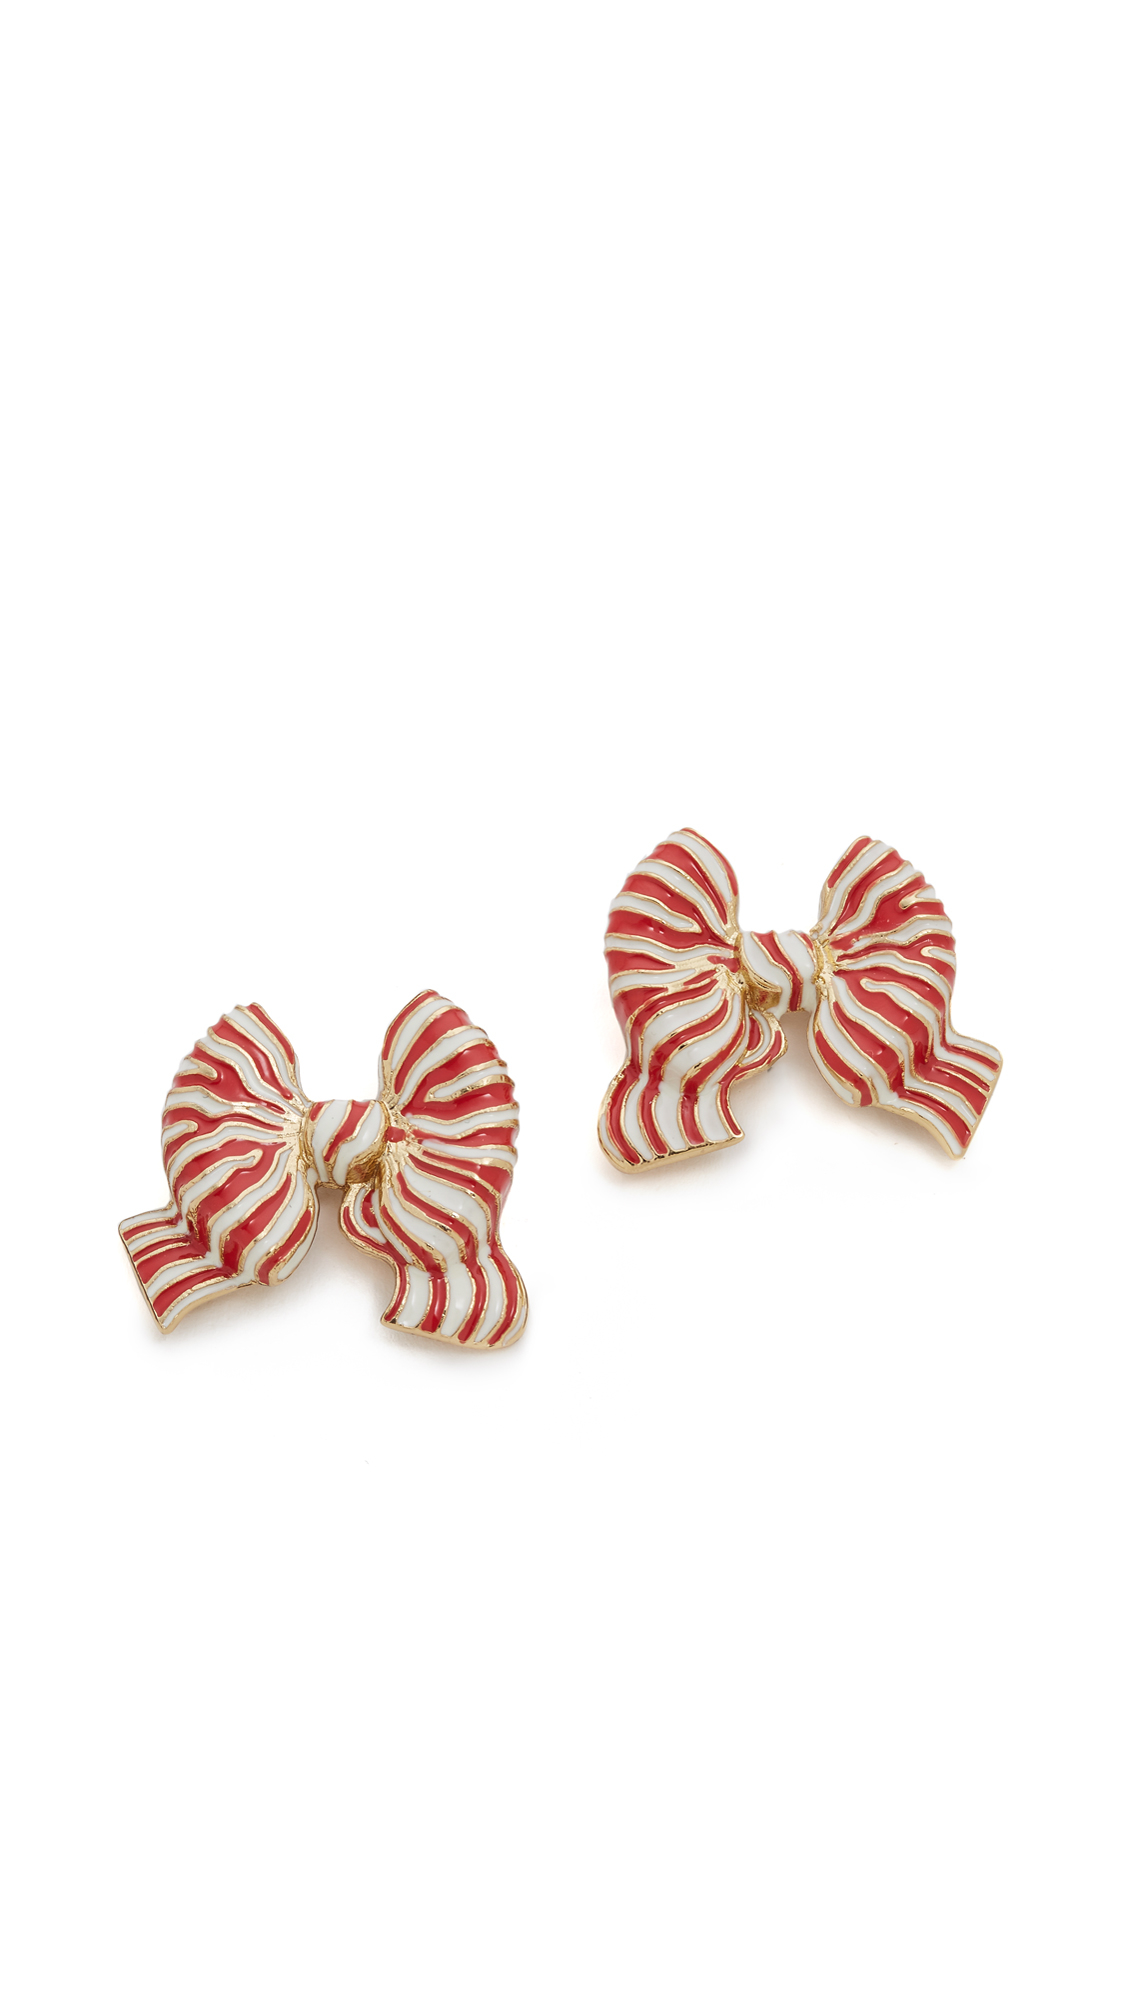 Lyst - Kate Spade New York Out Of The Loop Bow Statement Studs ...